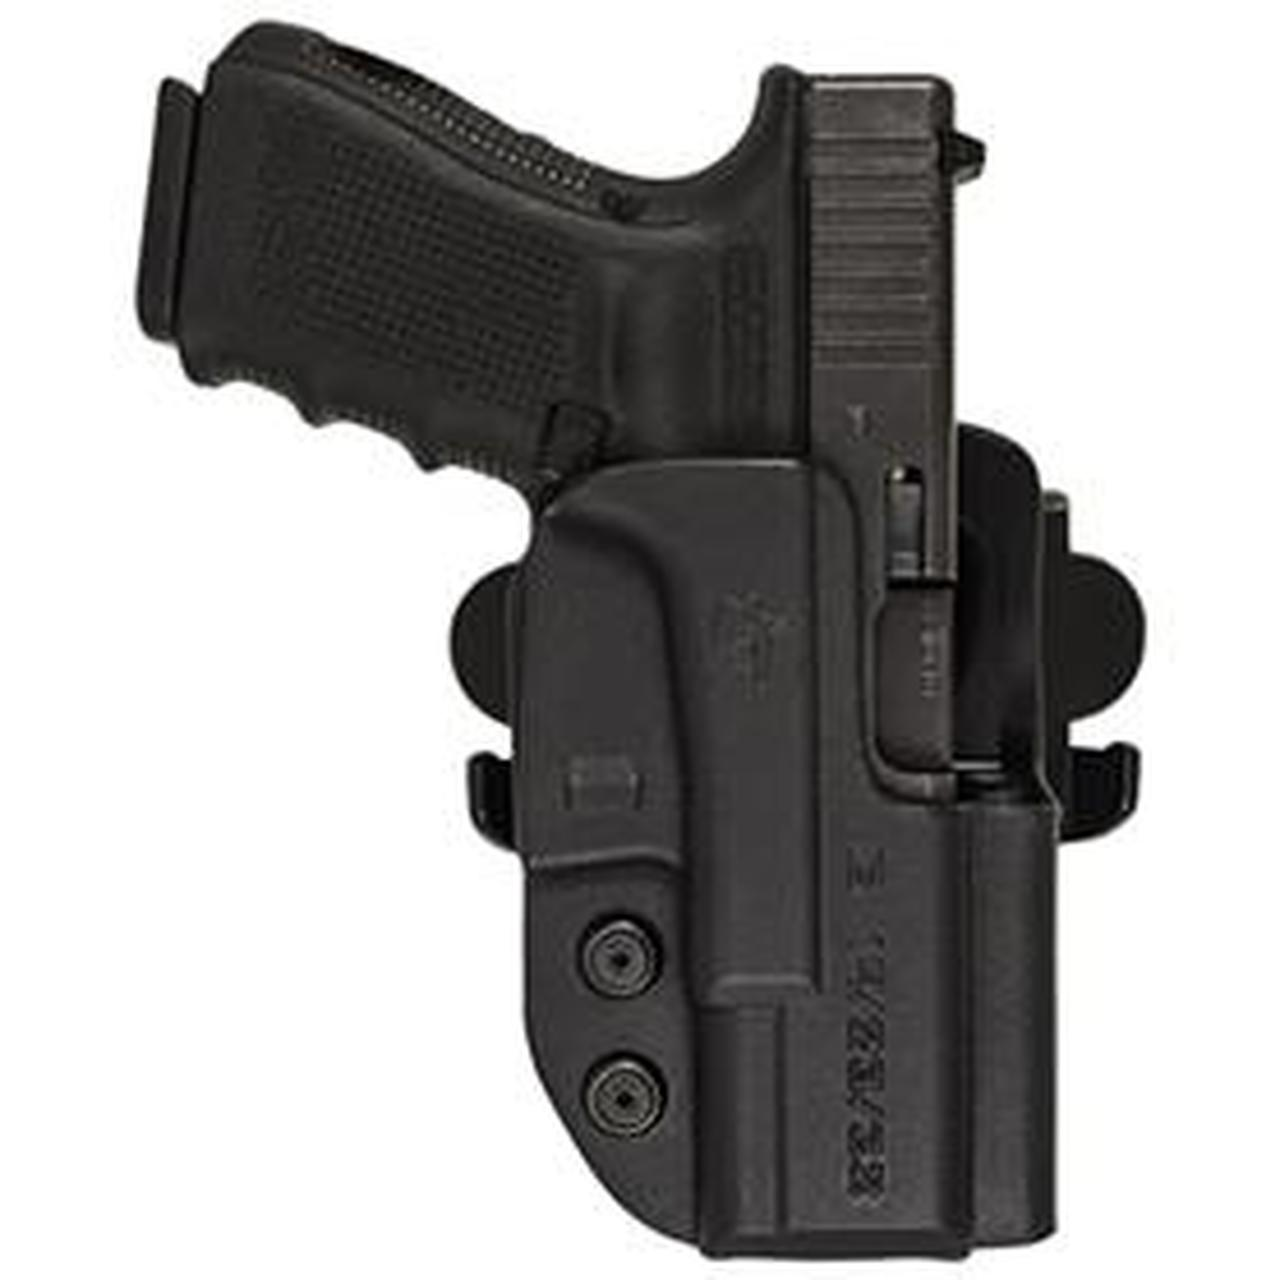 BEST VP9 IWB HOLSTER OF 2021